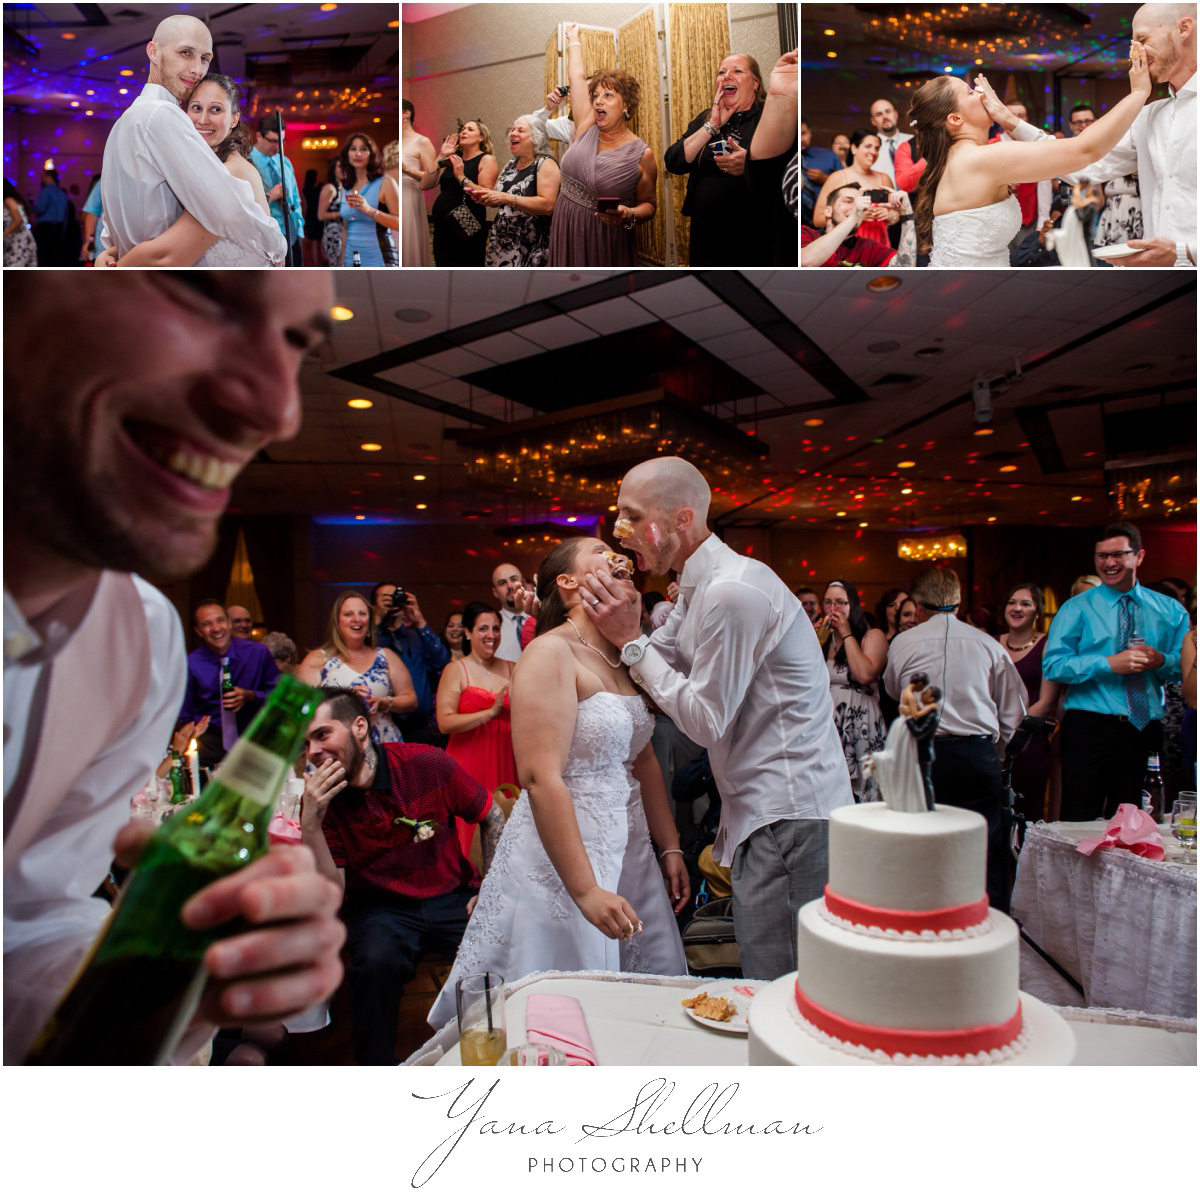 Radisson Hotel Philadelphia Wedding Photos by Point Pleasant Wedding Photographer - Rachel+Rick Wedding Photos